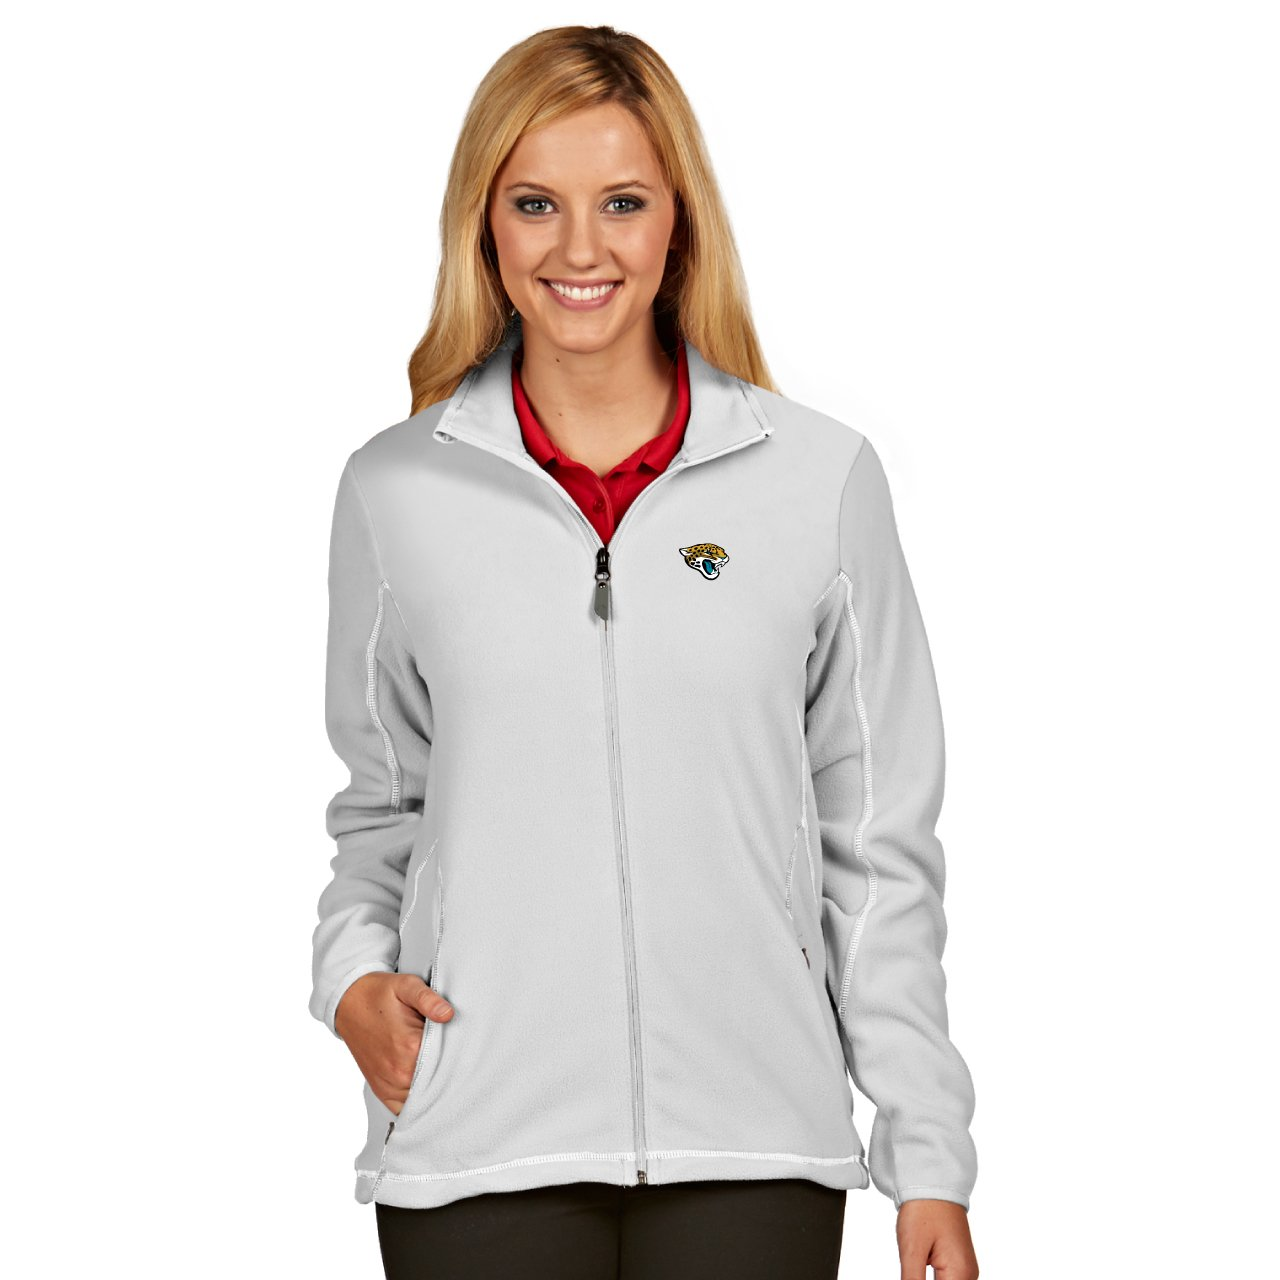 613eb48211e Amazon.com   NFL Jacksonville Jaguars Women s Ice Jacket   Sports ...